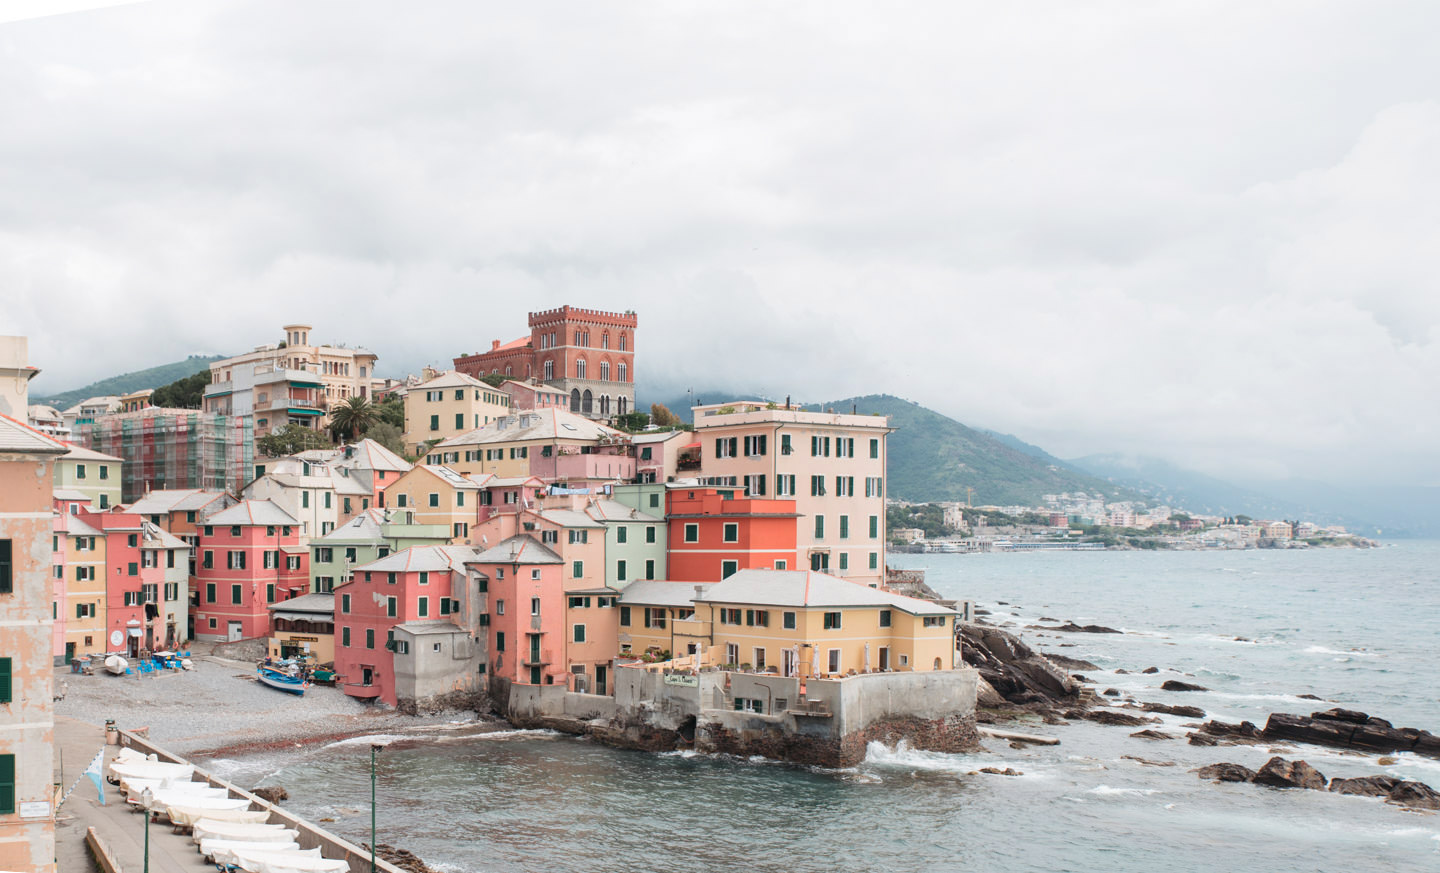 Blog-Mode-And-The-City-Lifestyle-Italie-Bocadasse-Camogli-Sestri-Levante-4